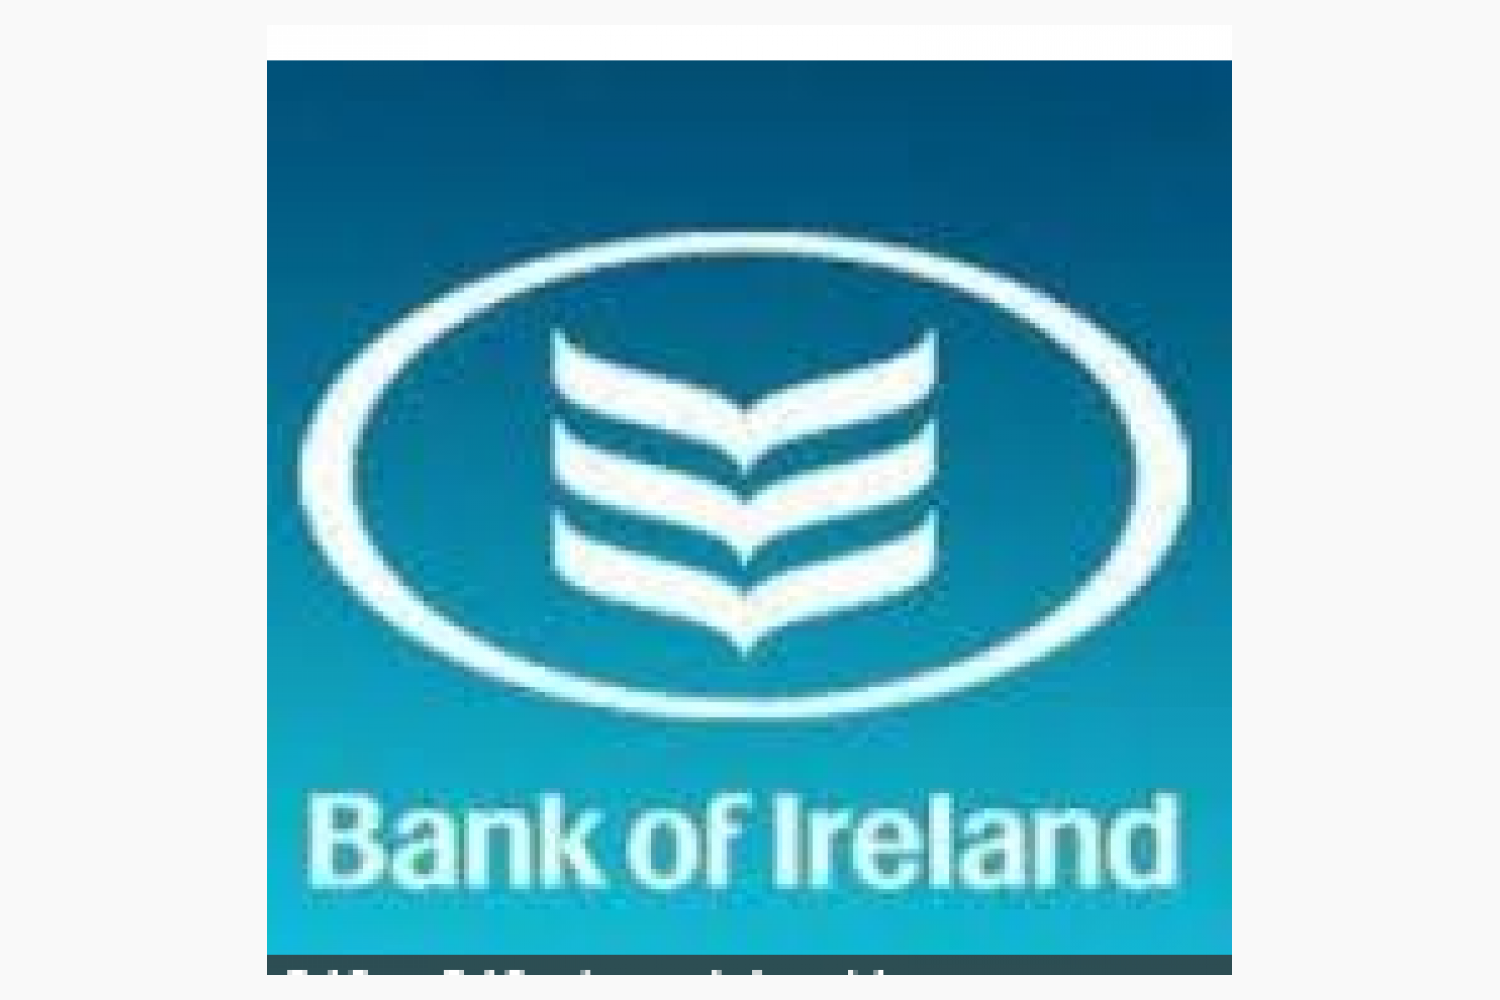 Bank Of Ireland Enterprise Event May 17th in Leopardstown Pavillion from 8am- 11am